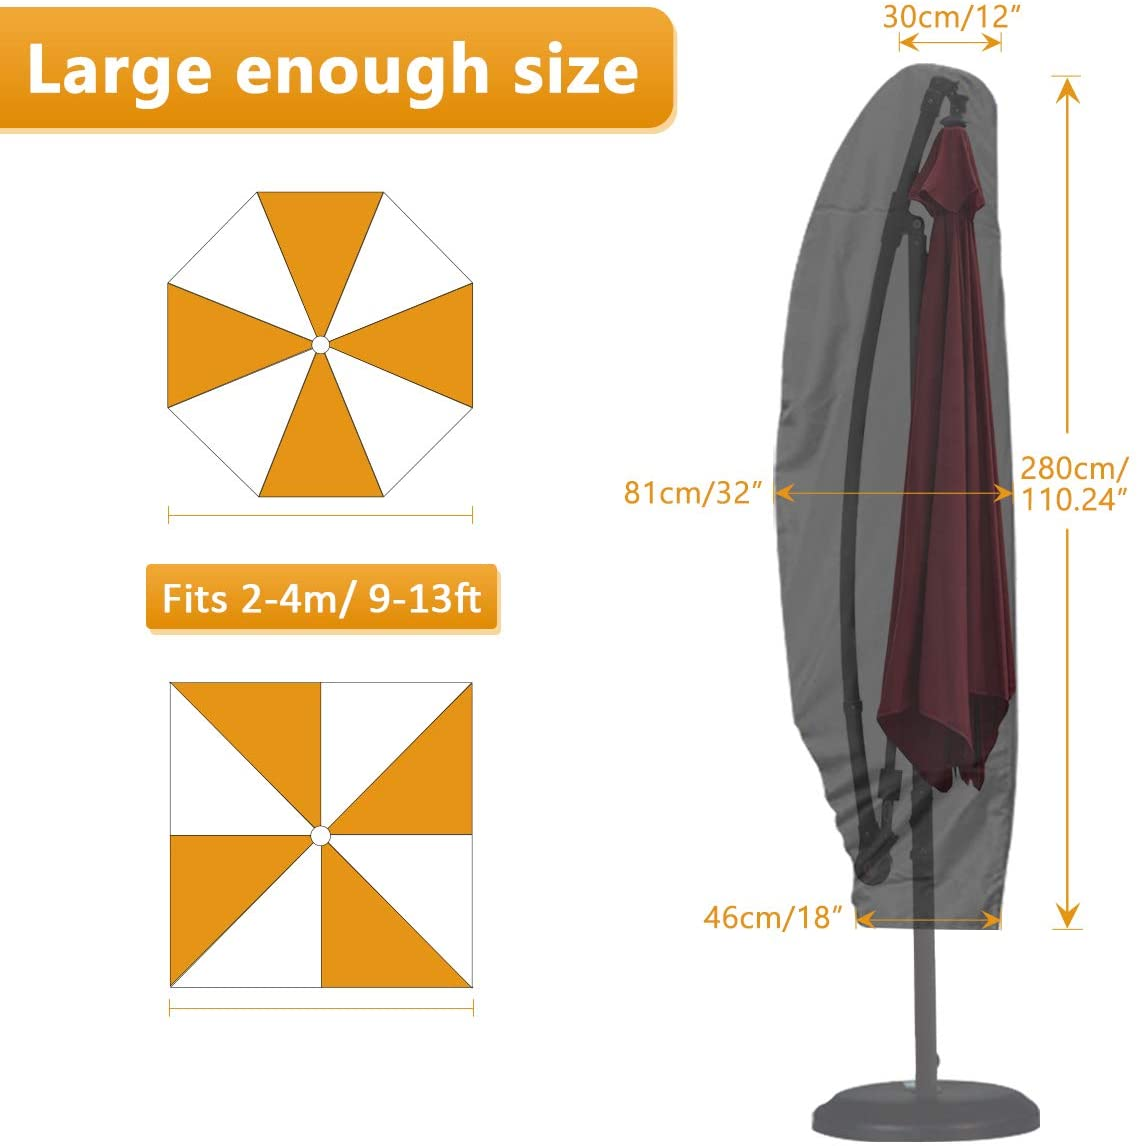 GEMITTO Patio Umbrella Cover, Waterproof Snowproof Outdoor Offset Umbrella Cover with Zipper for 9-13ft Cantilever Parasol Umbrellas, Winter Protection (420D Cantilever Umbrella Cover) : Garden & Outdoor